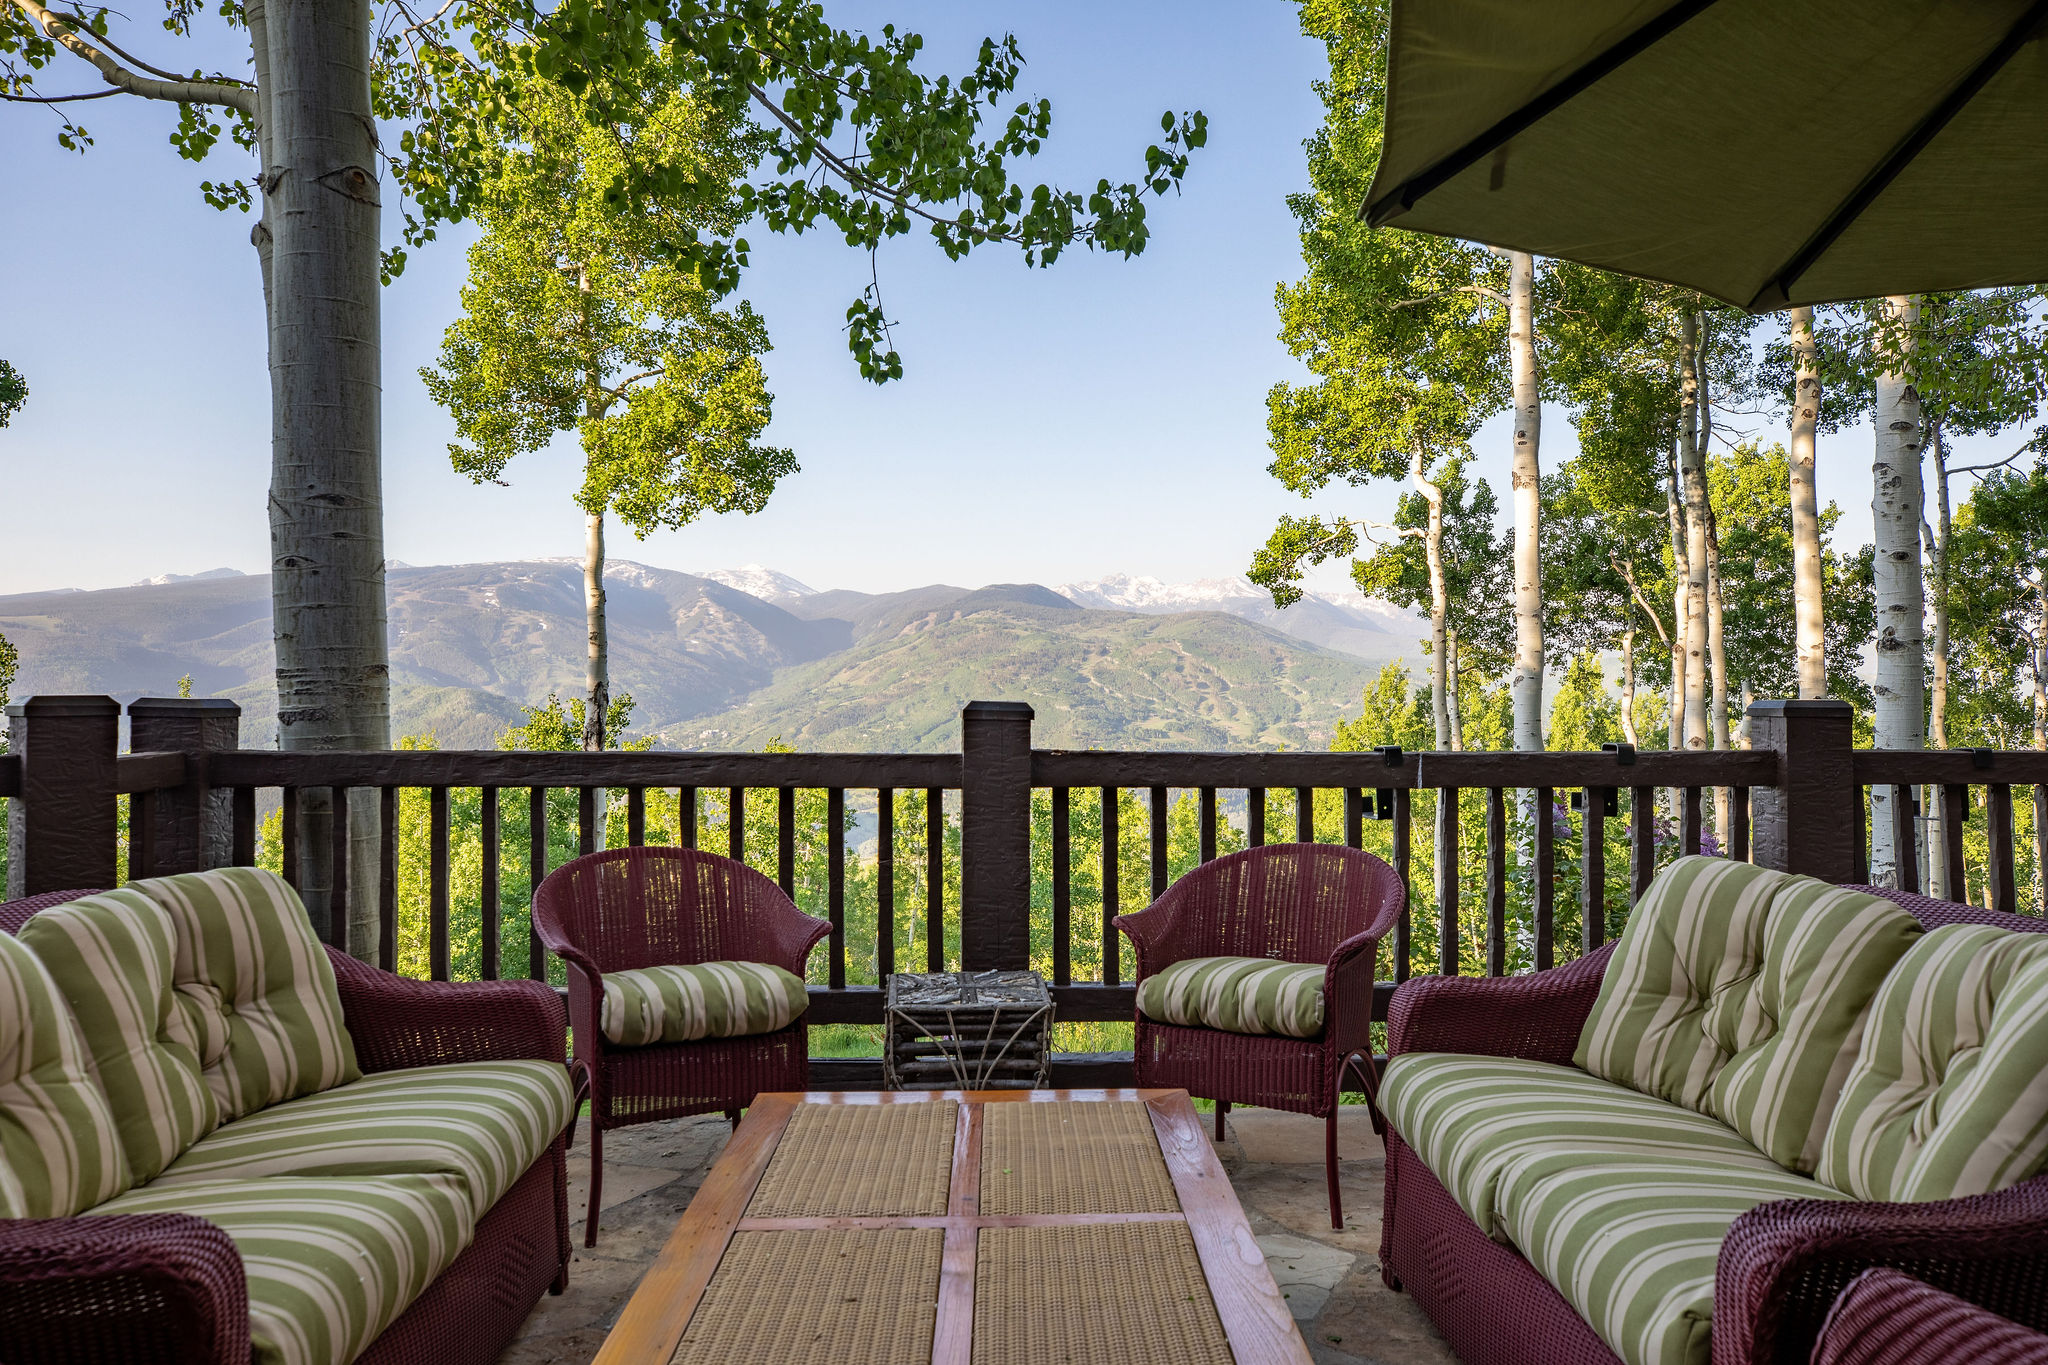 Summertime deck views from luxury mountain home